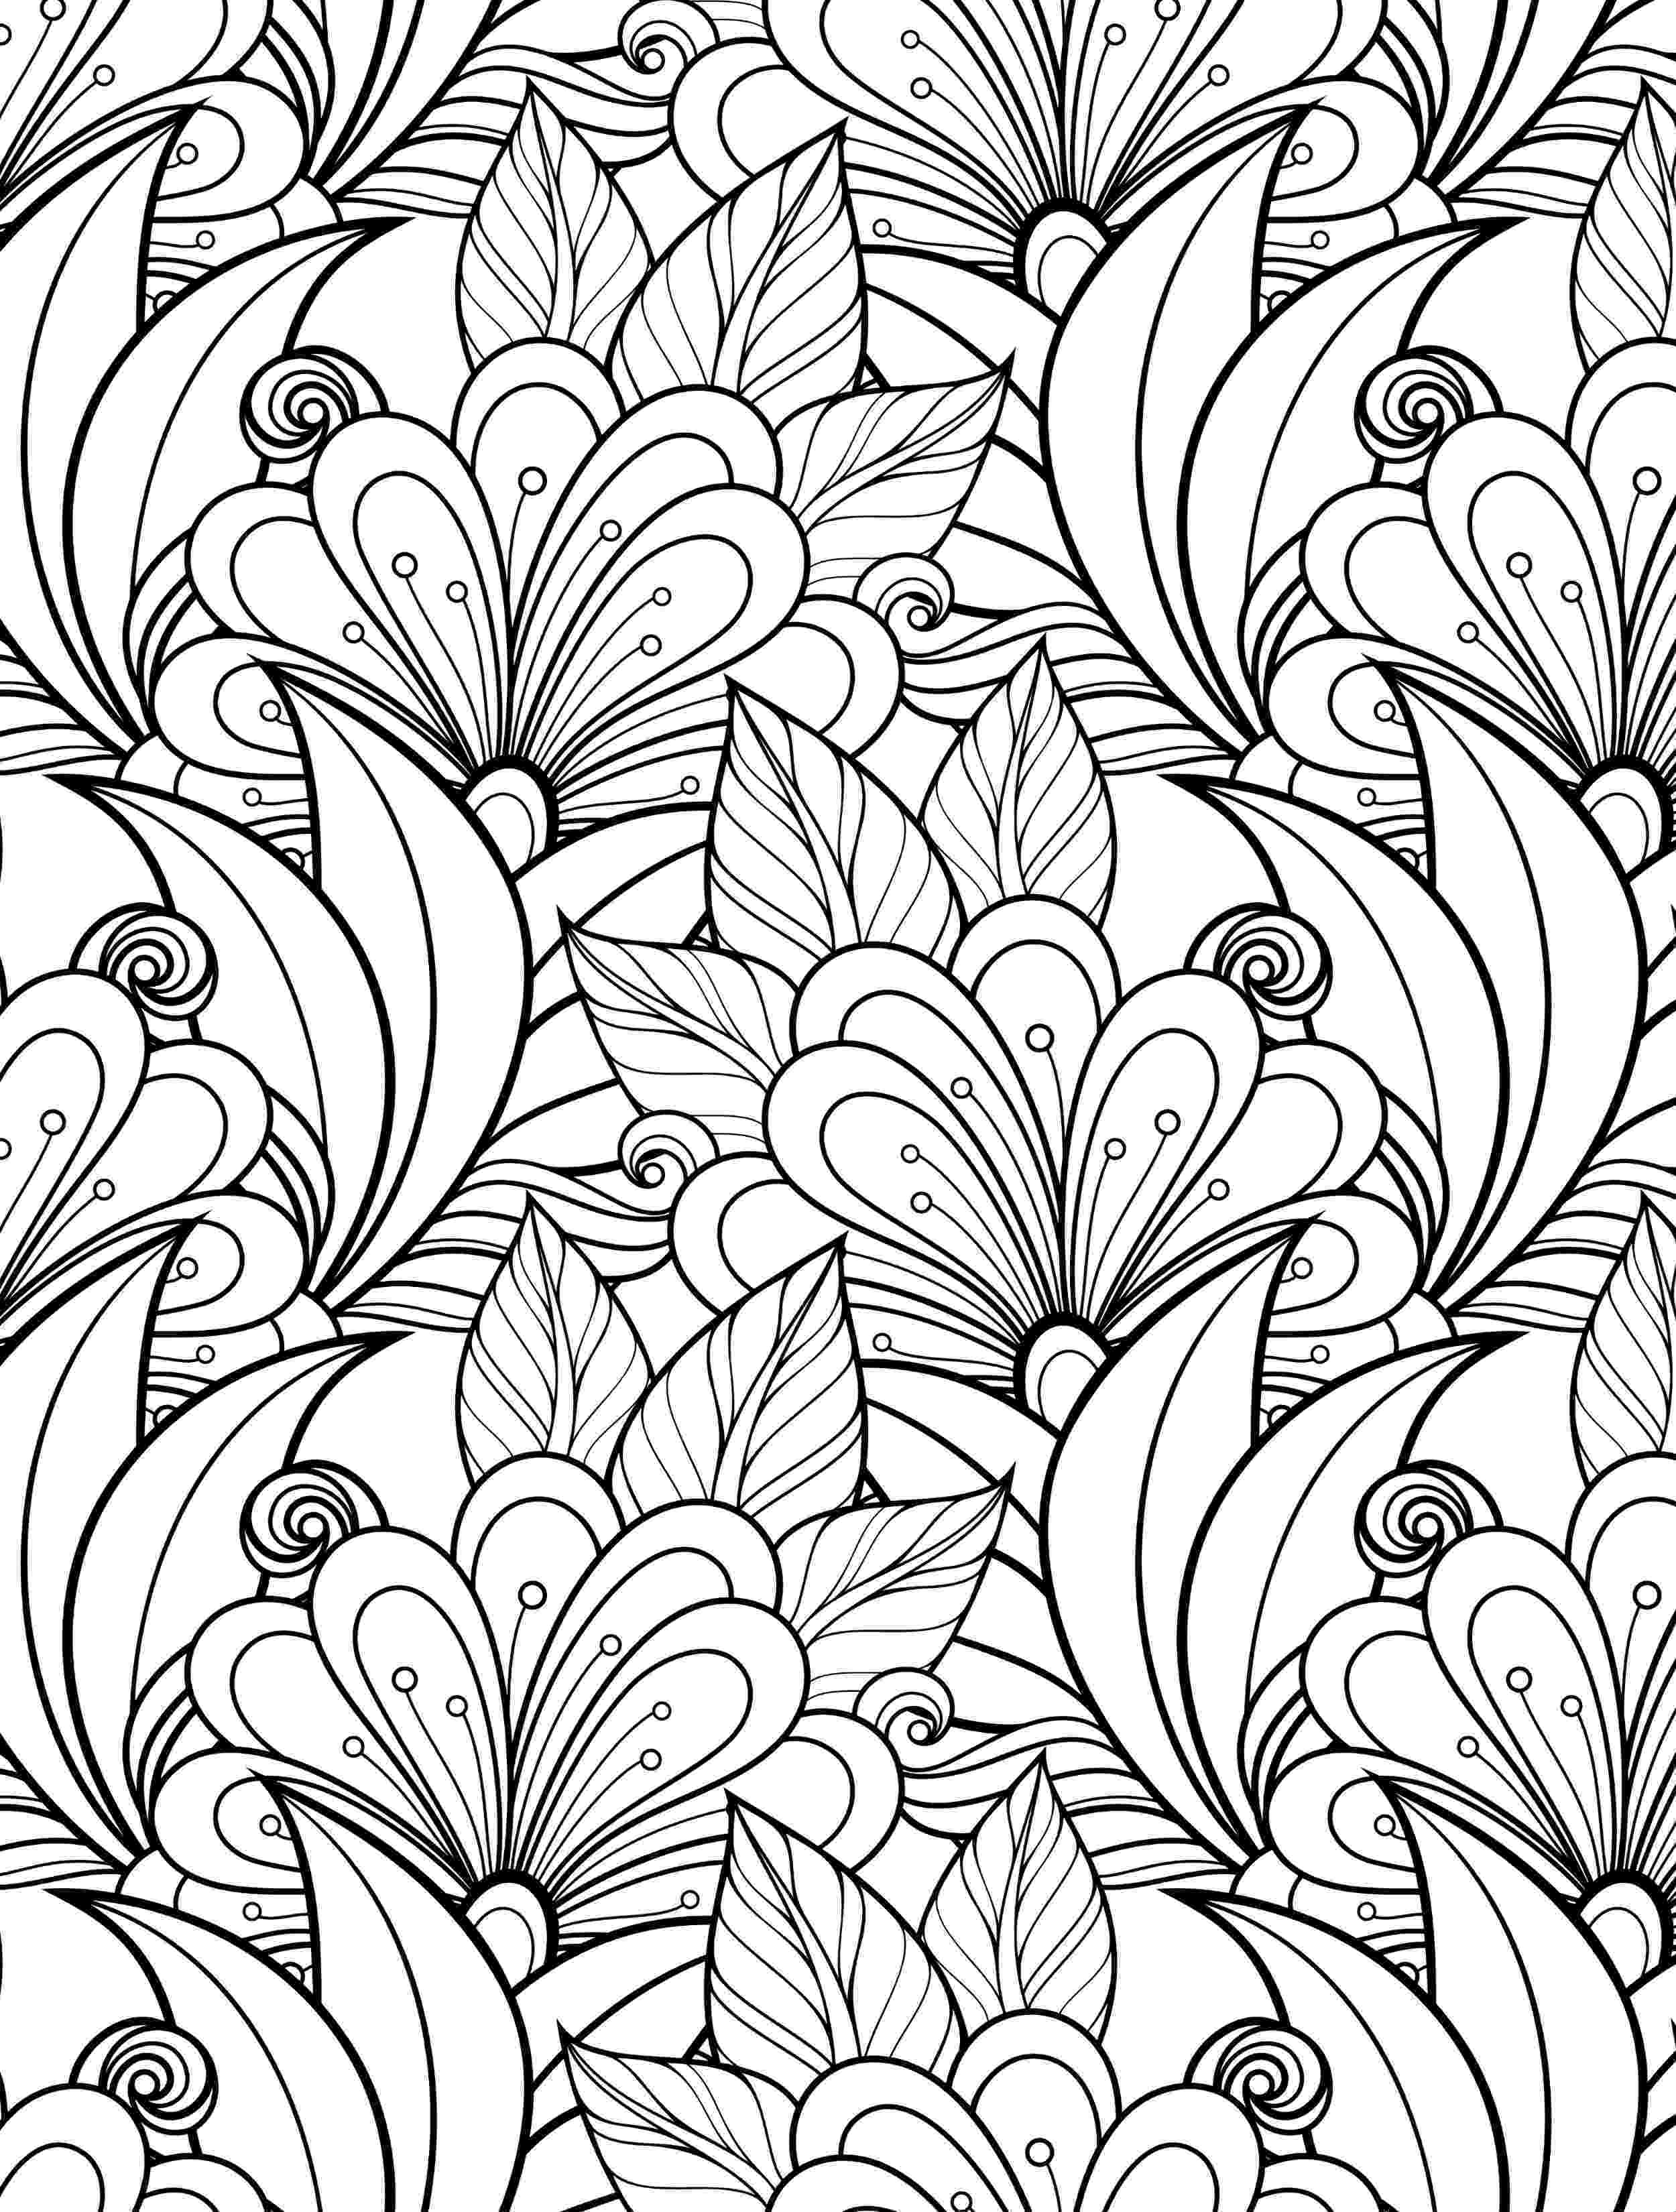 patterns to colour for adults geometric patterns coloring pages browse patterns patterns to adults for colour